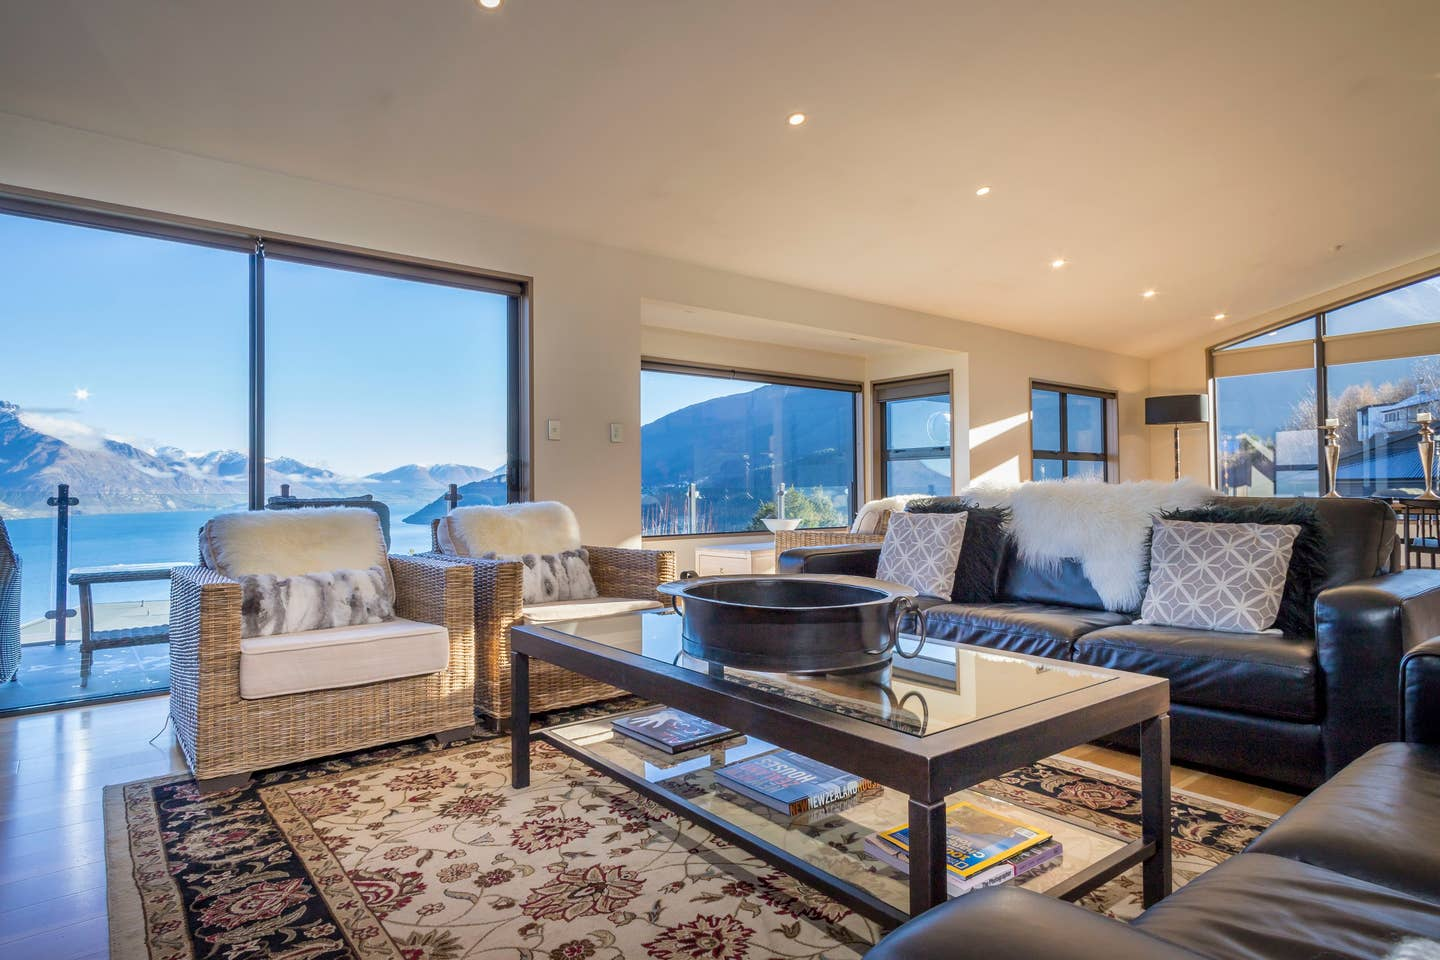 Queenstown Airbnb Penthouse